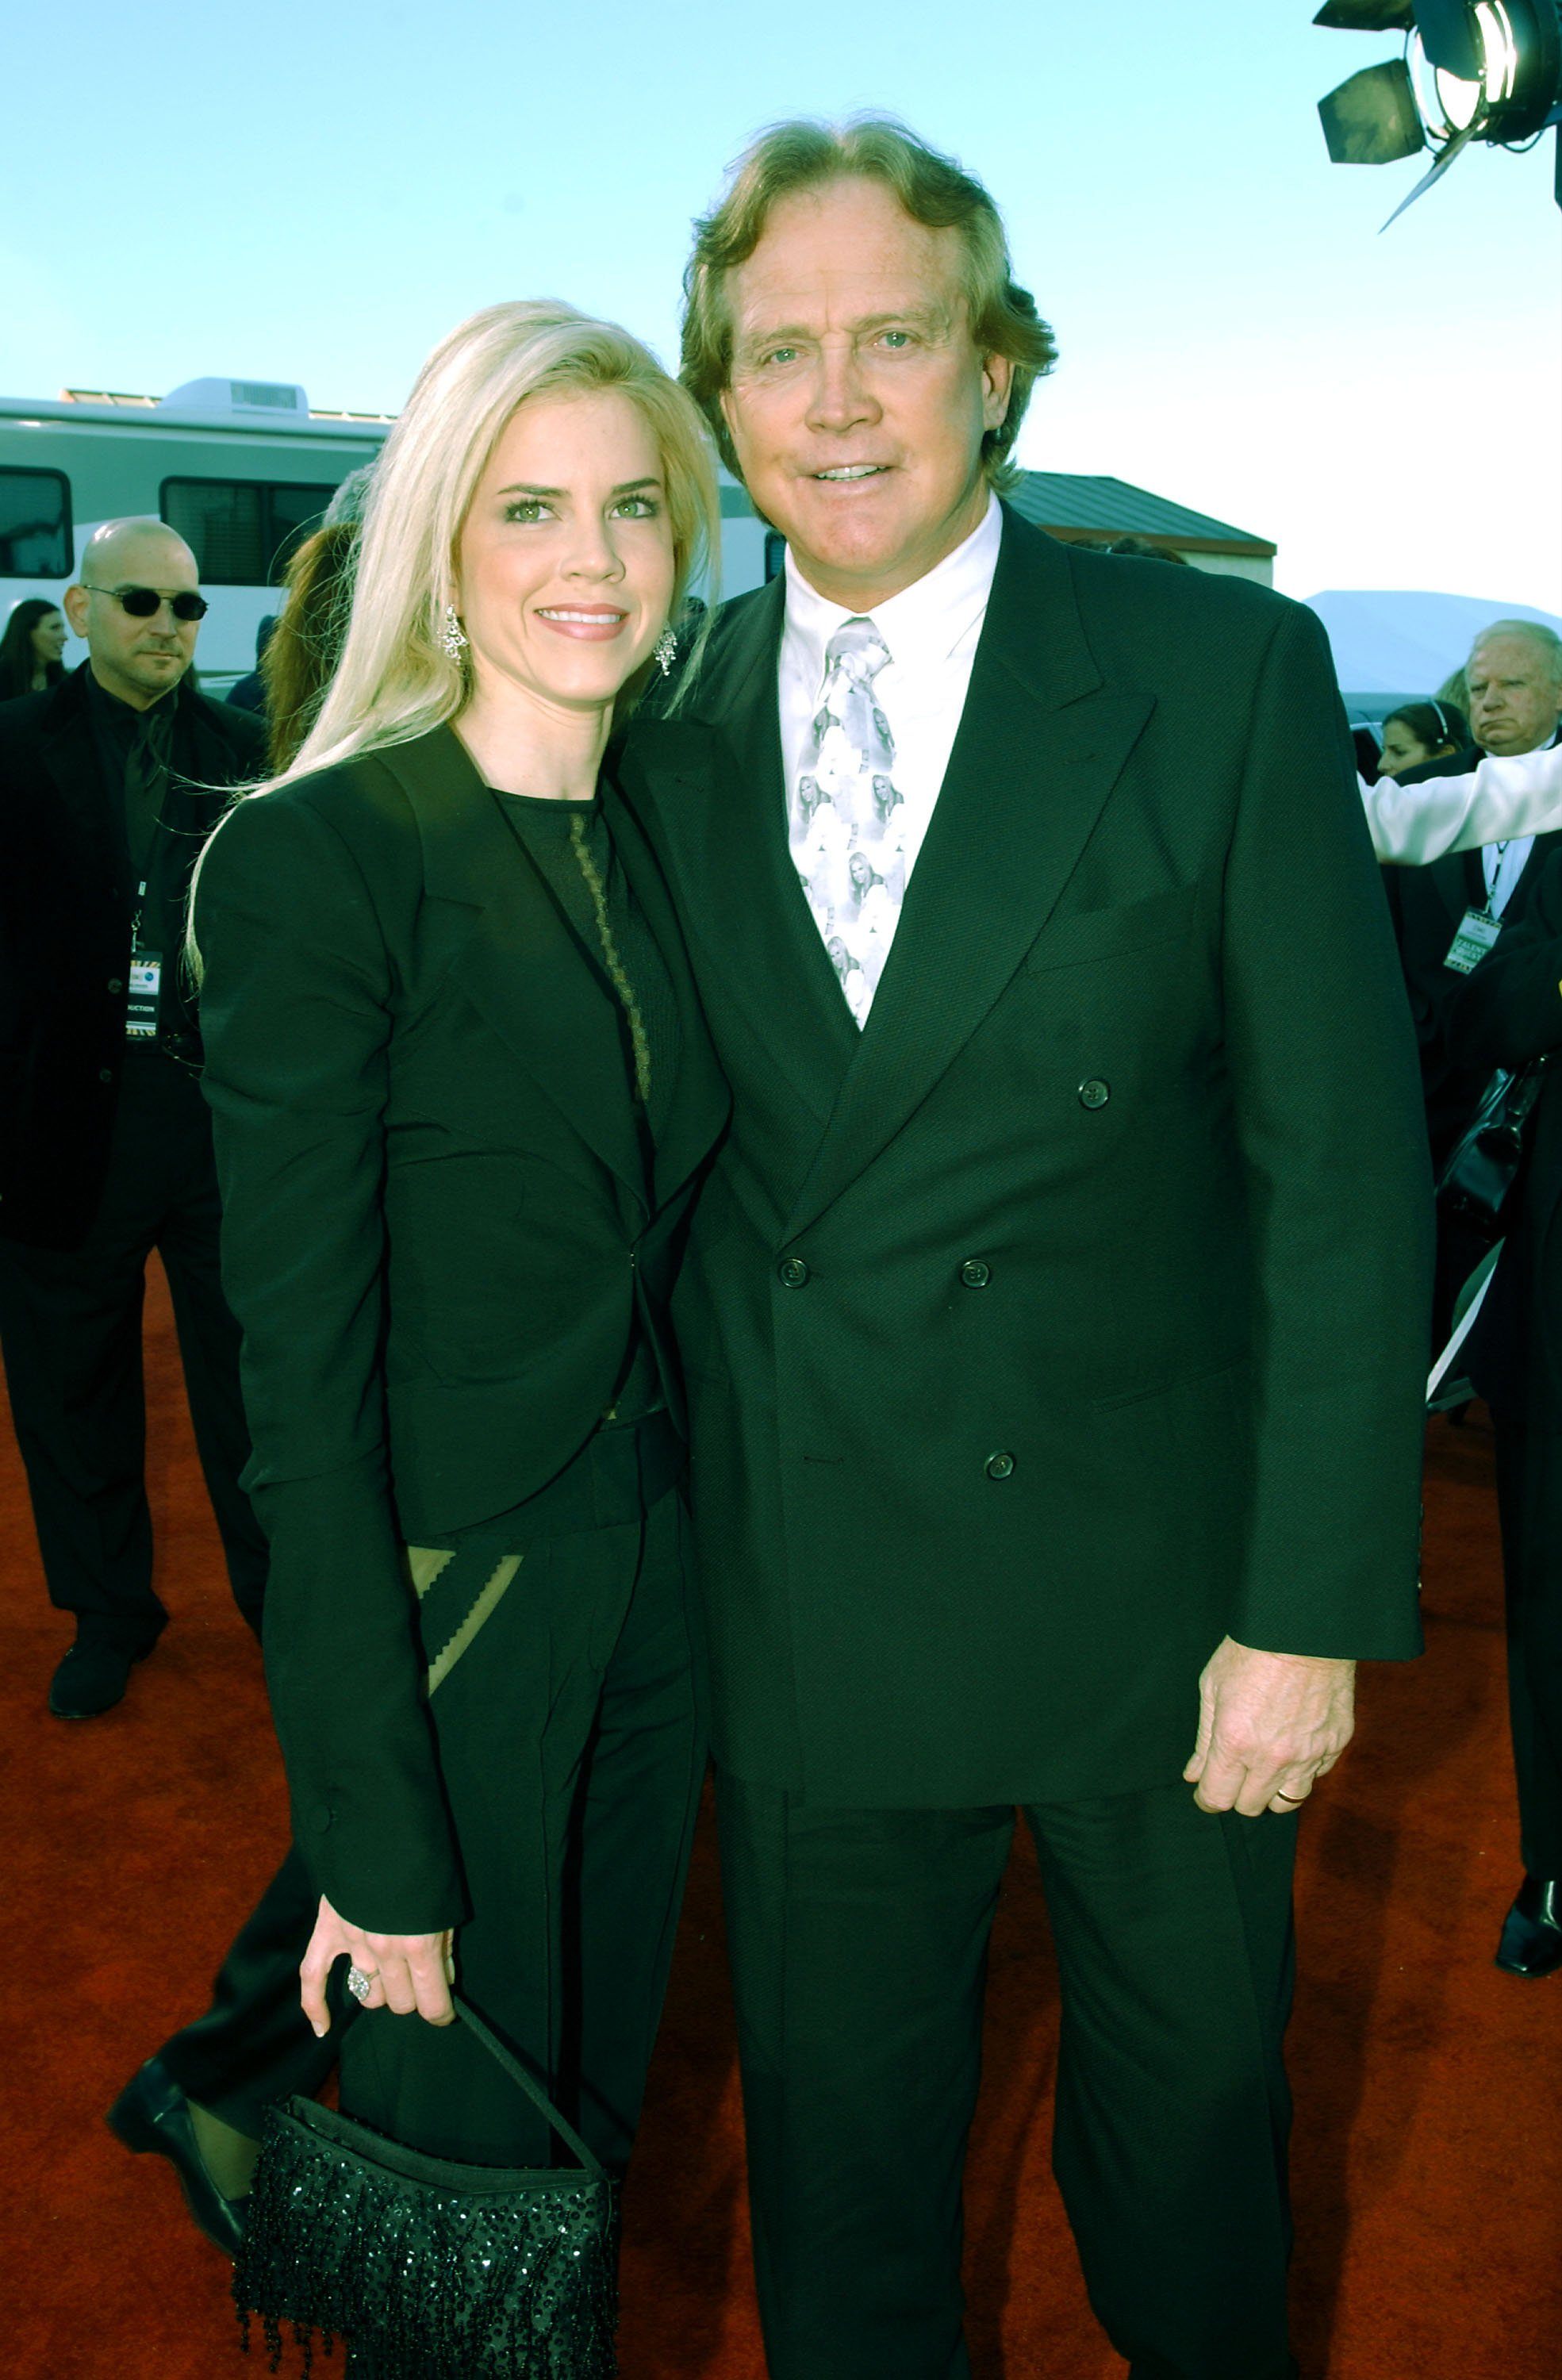 ee Majors and his wife Faith attend the TV Land Awards 2003 at the Hollywood Palladium on March 2, 2003. | Photo: GettyImages